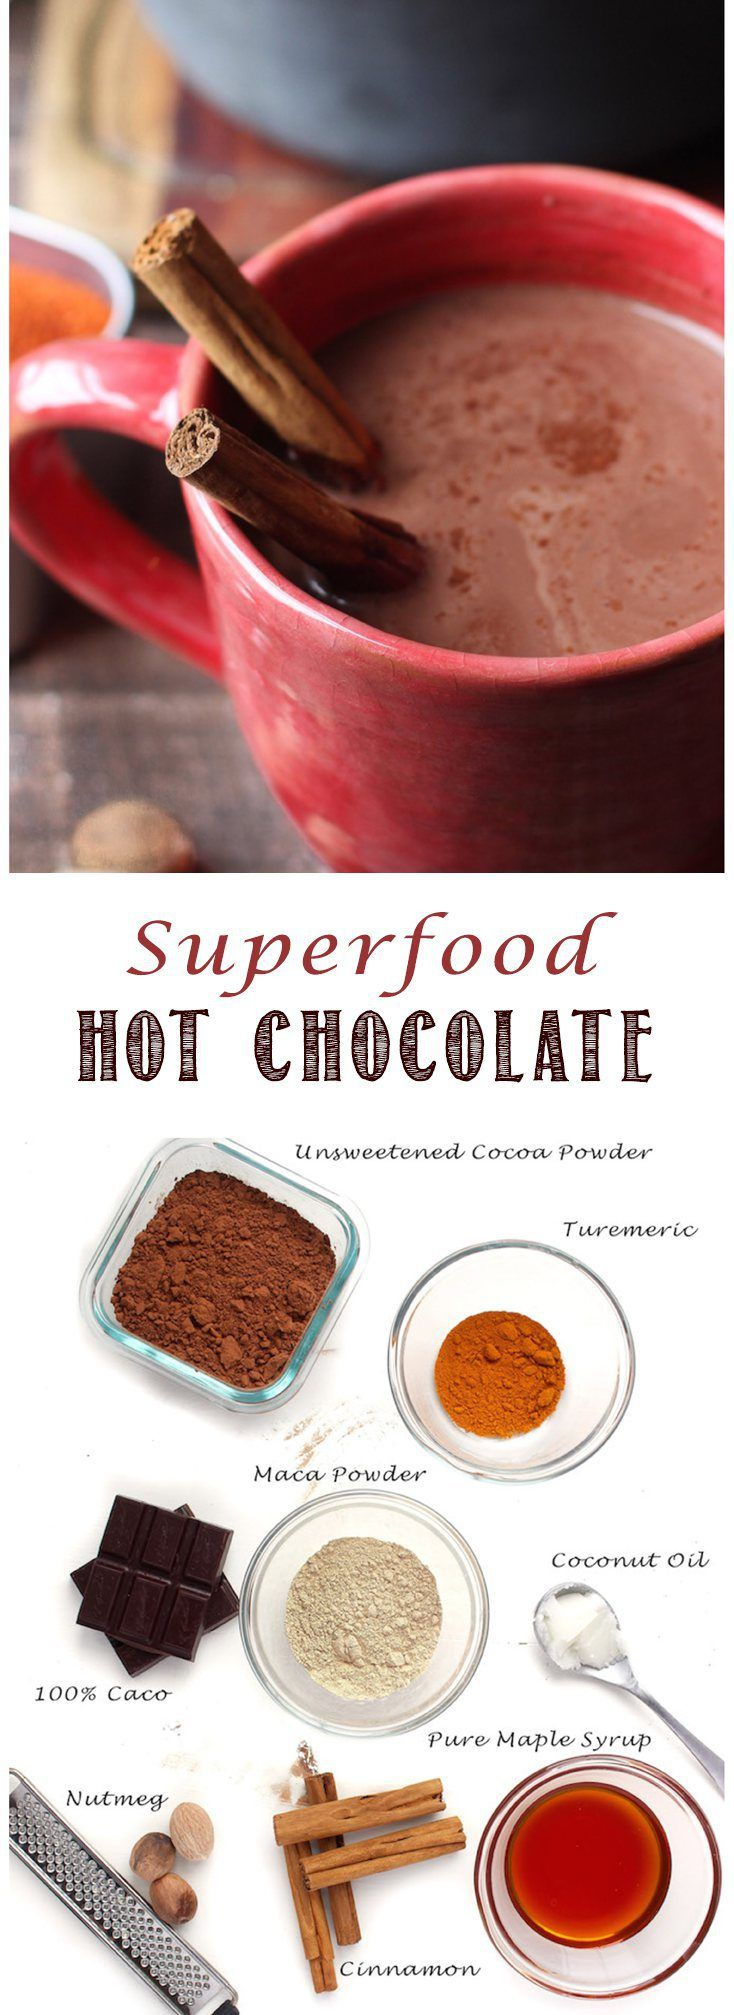 Superfood Hot Chocolate - with maca, coconut oil and turmeric. Yum!